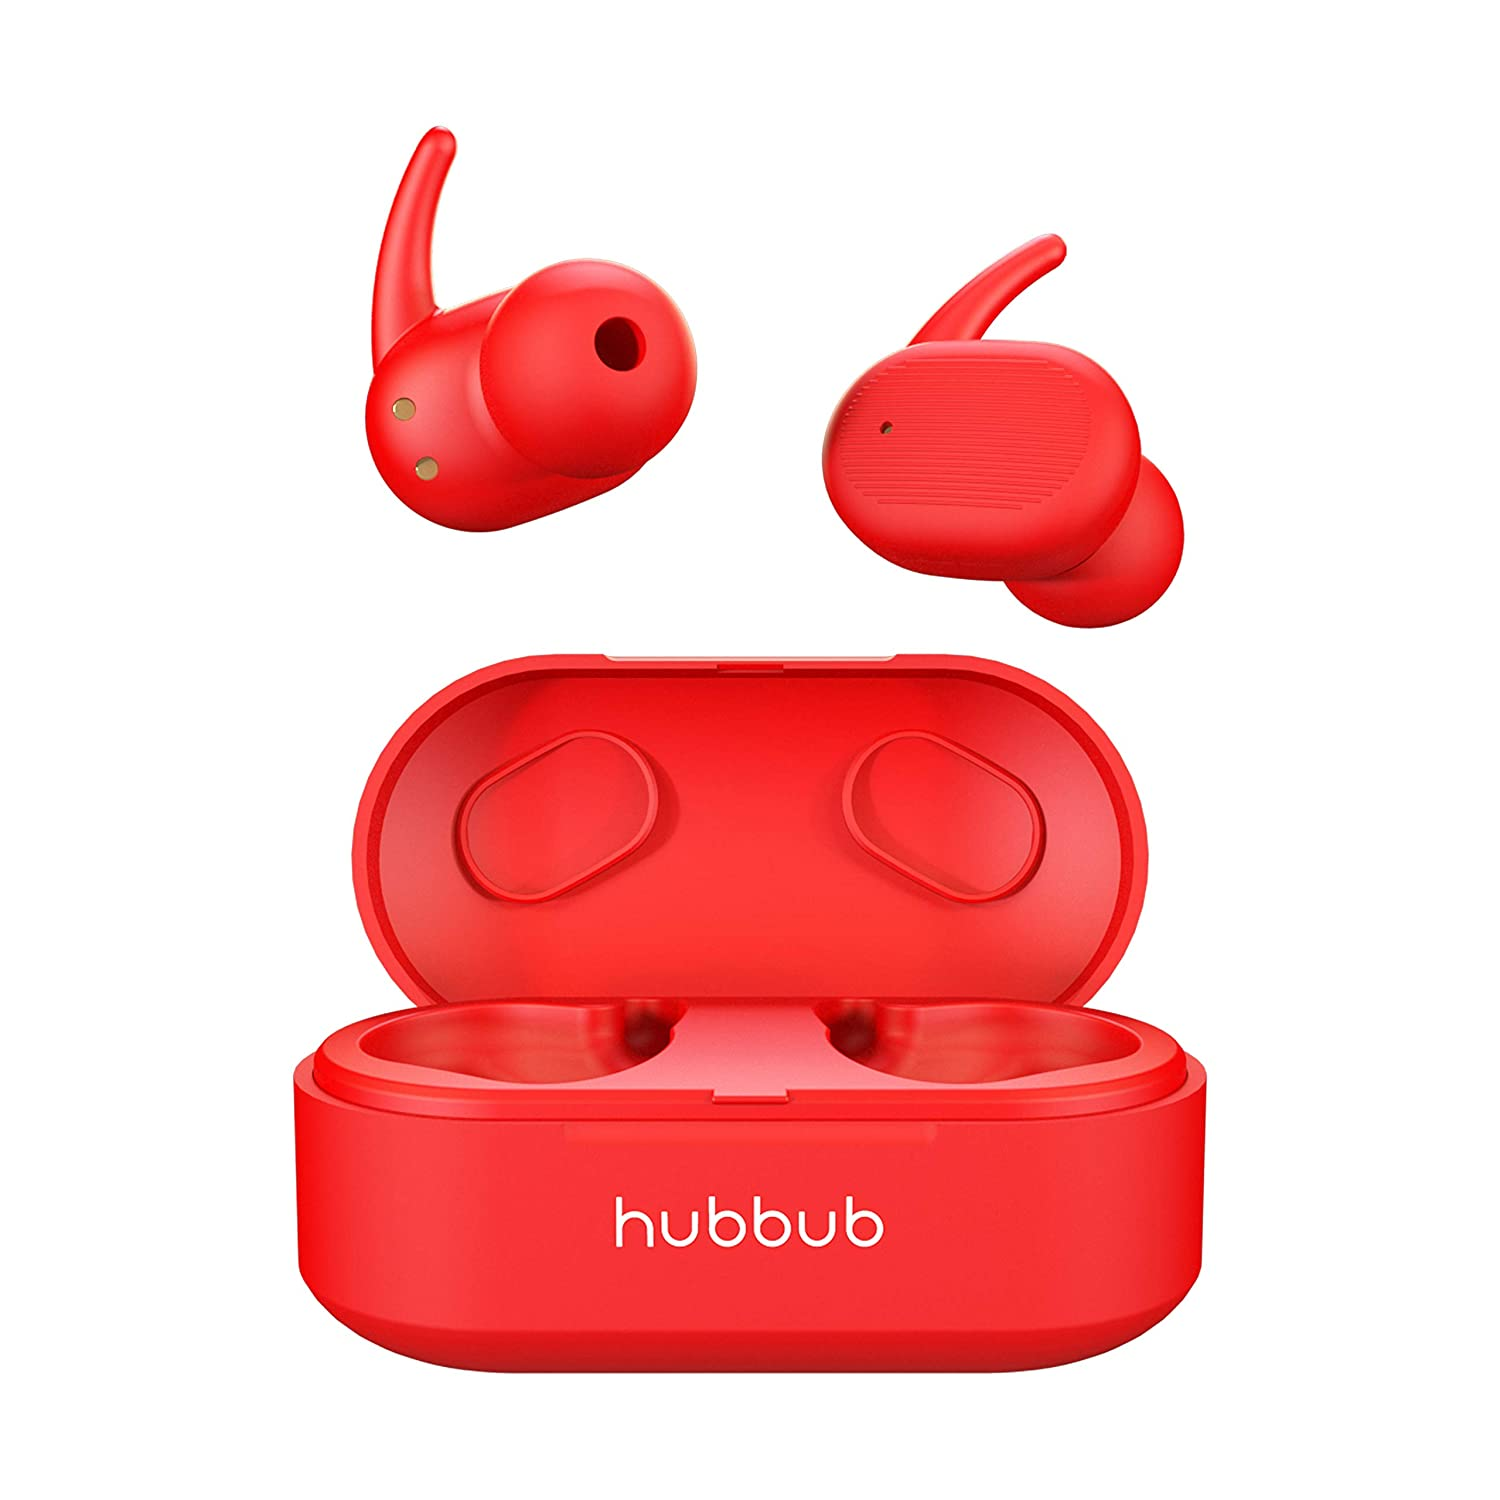 HUBBUB BASS BOMB EARBUDS PRICE, FEATURES, SPECIFICATIONS